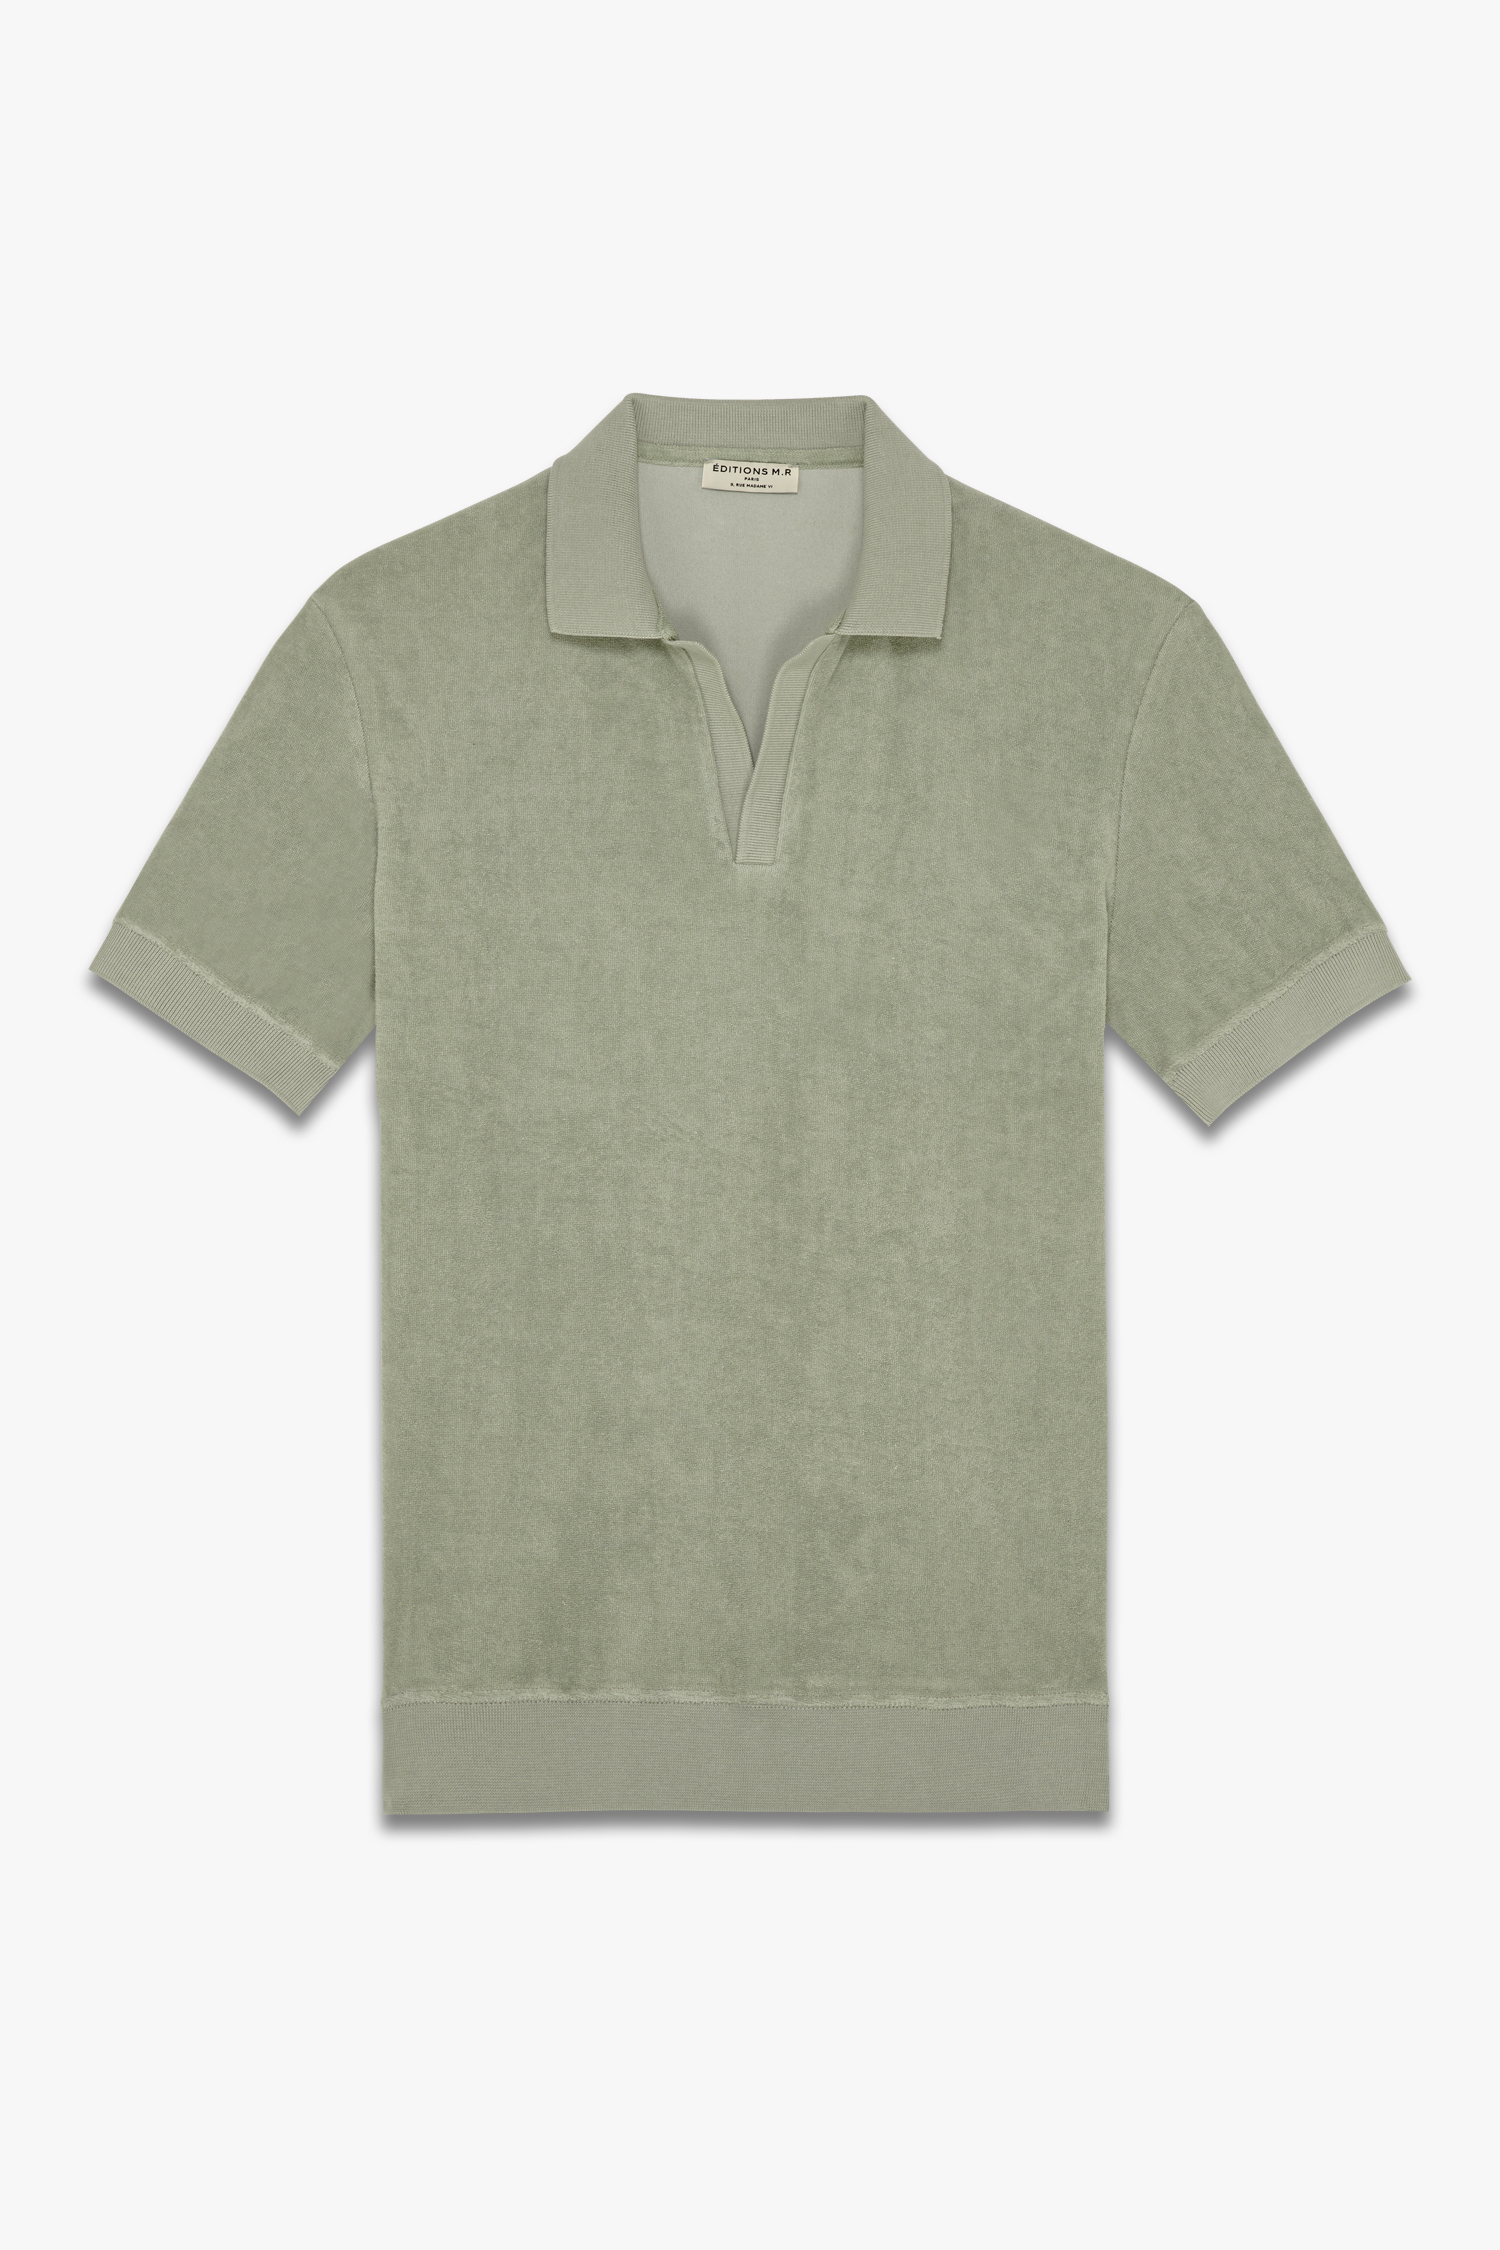 polo-eponge-manches-courtes-vert.jpg.png